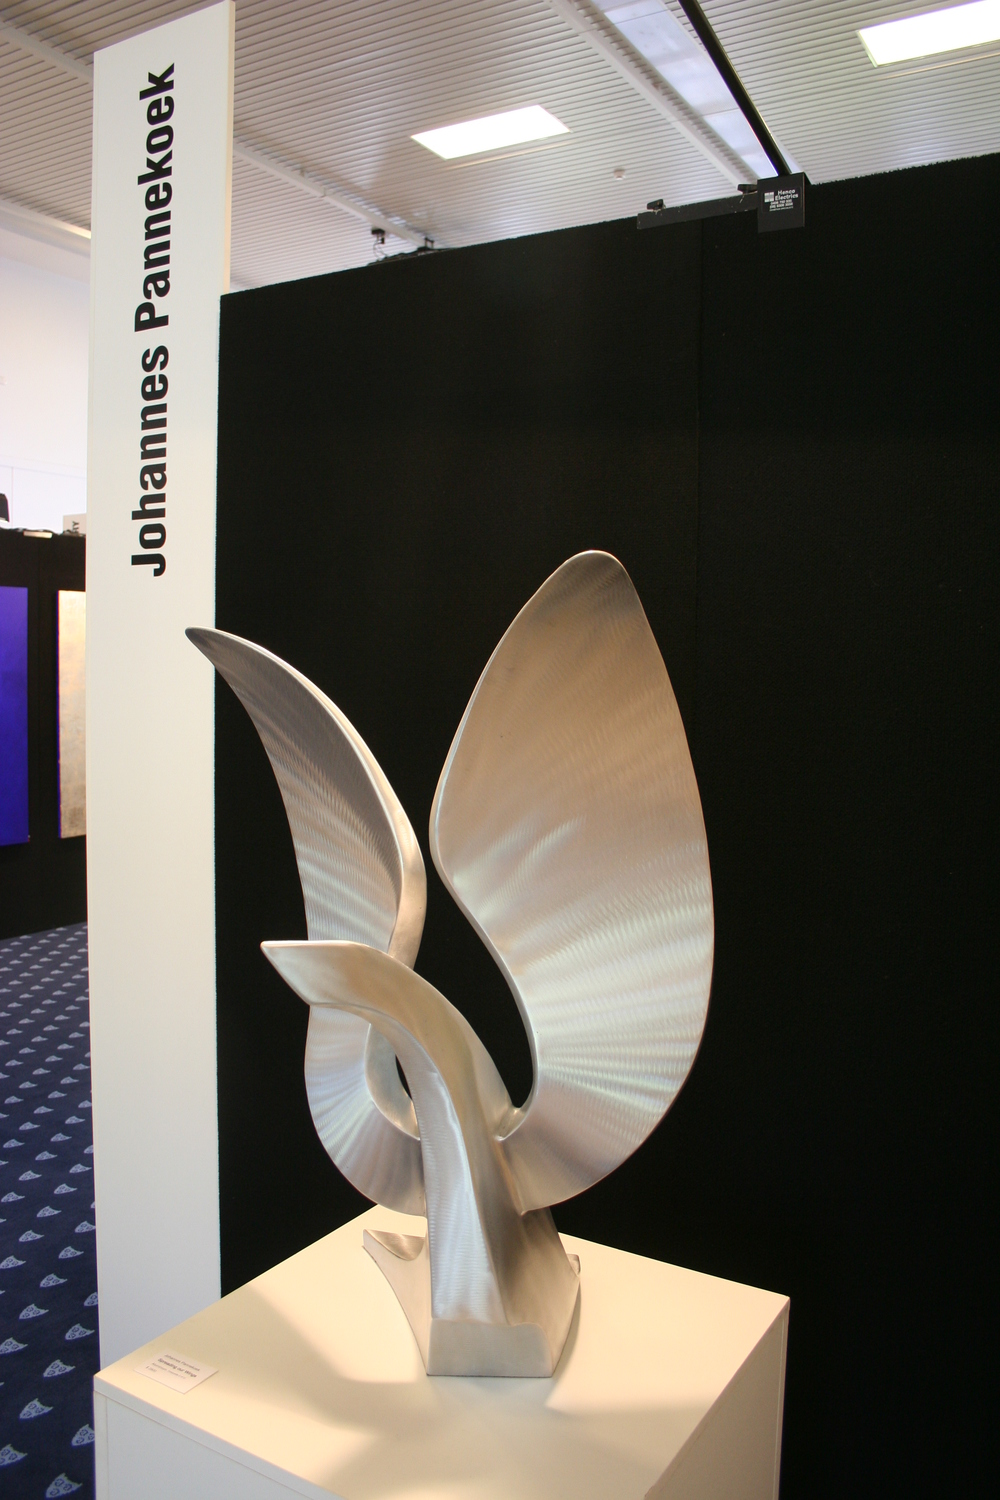 Johannes Pannekoek - Spreading our Wings - Maquette - 2009.JPG